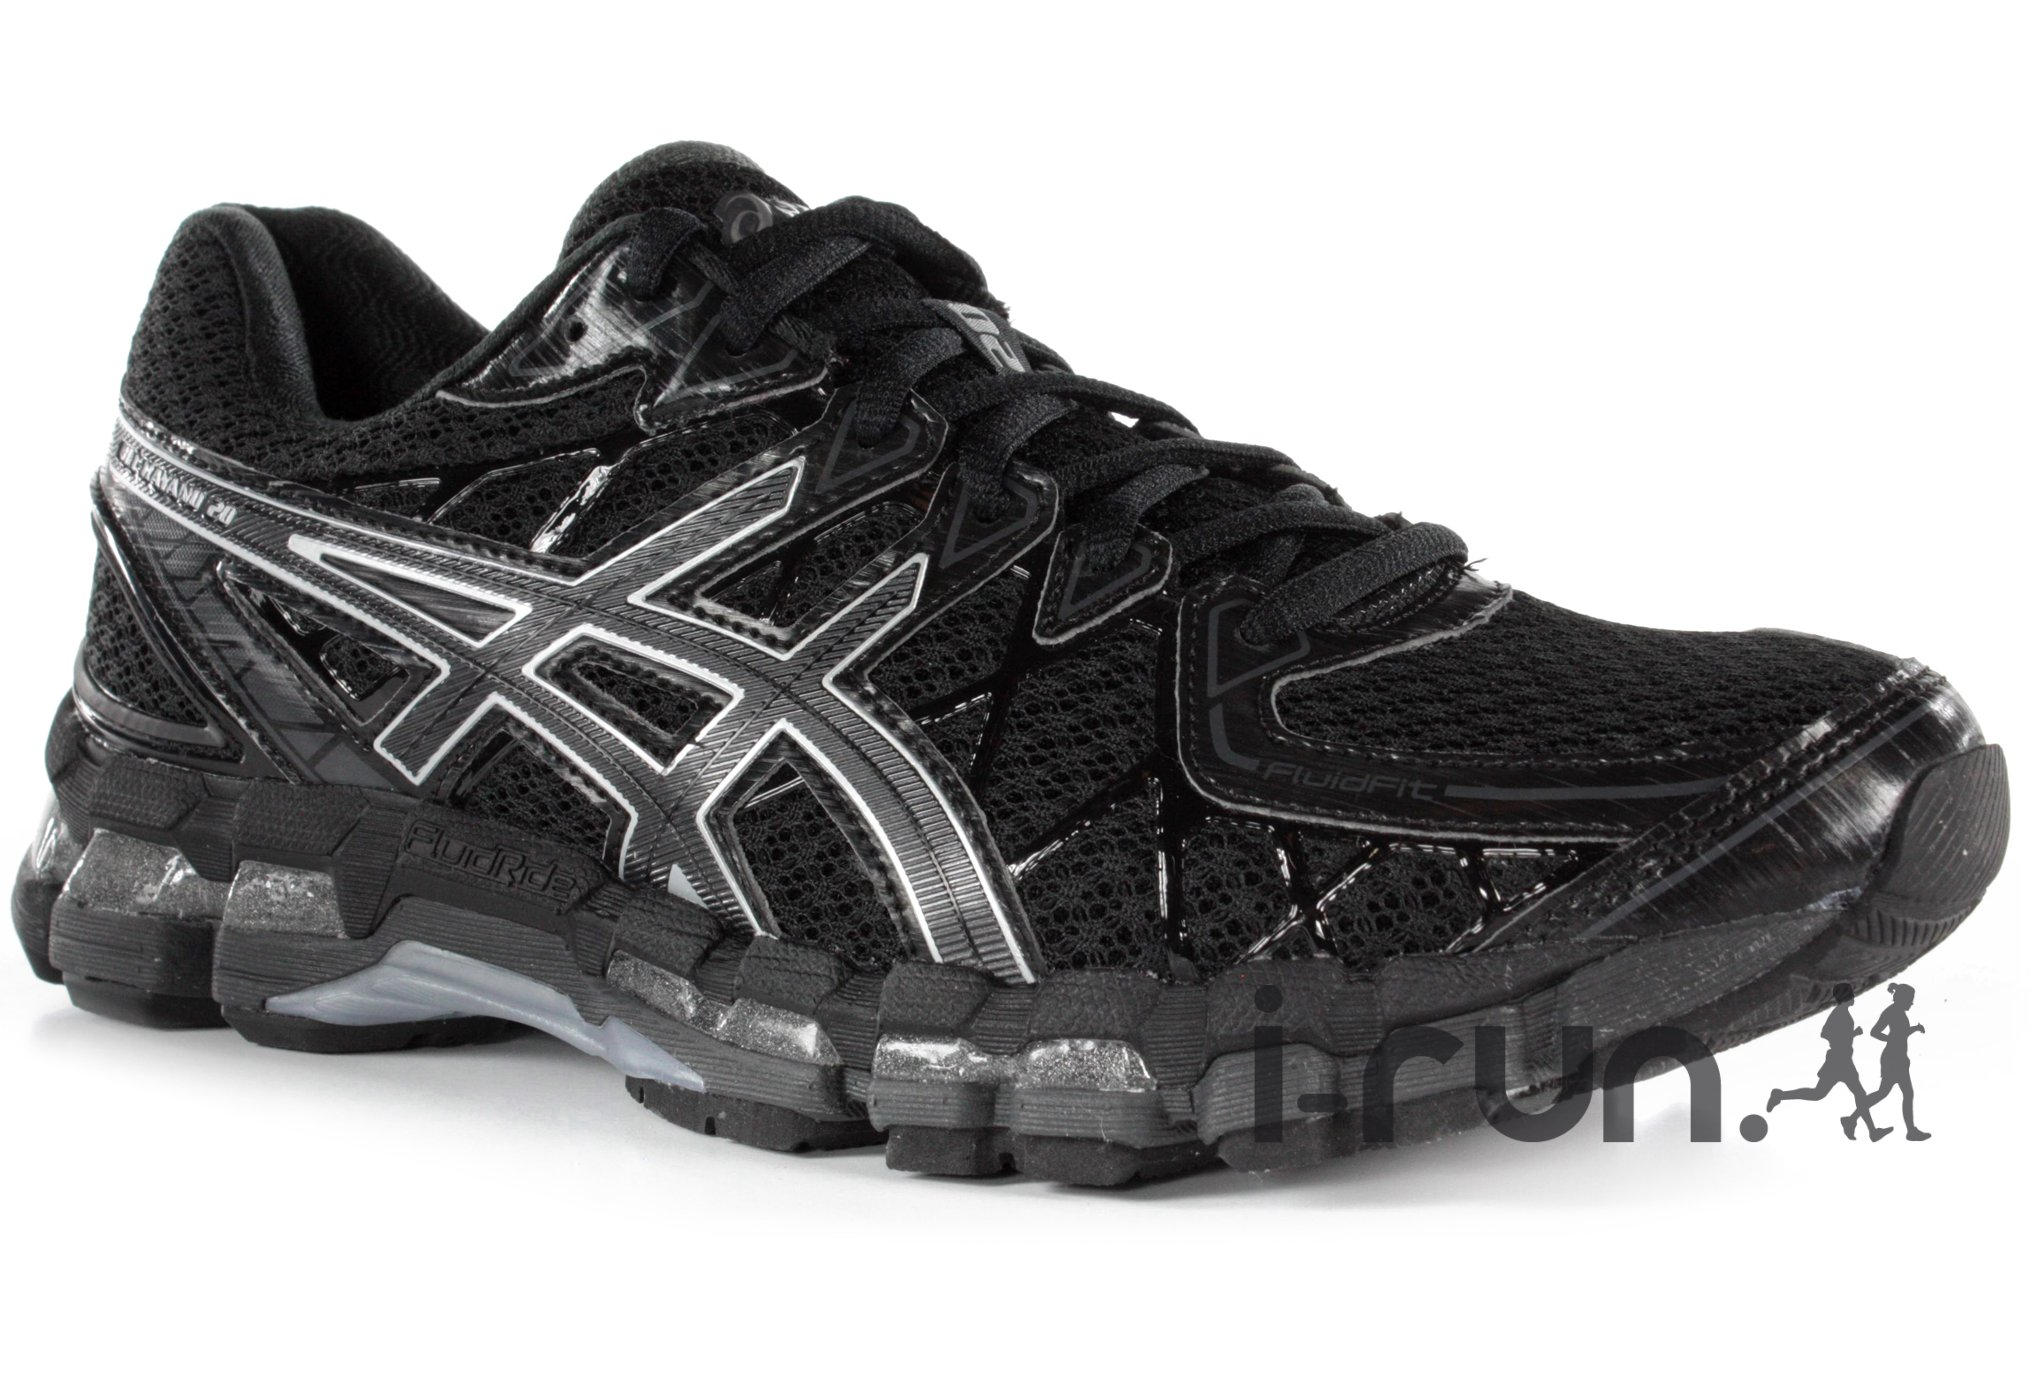 Asics Gel Kayano 20 Black Series M Di�t�tique Chaussures homme